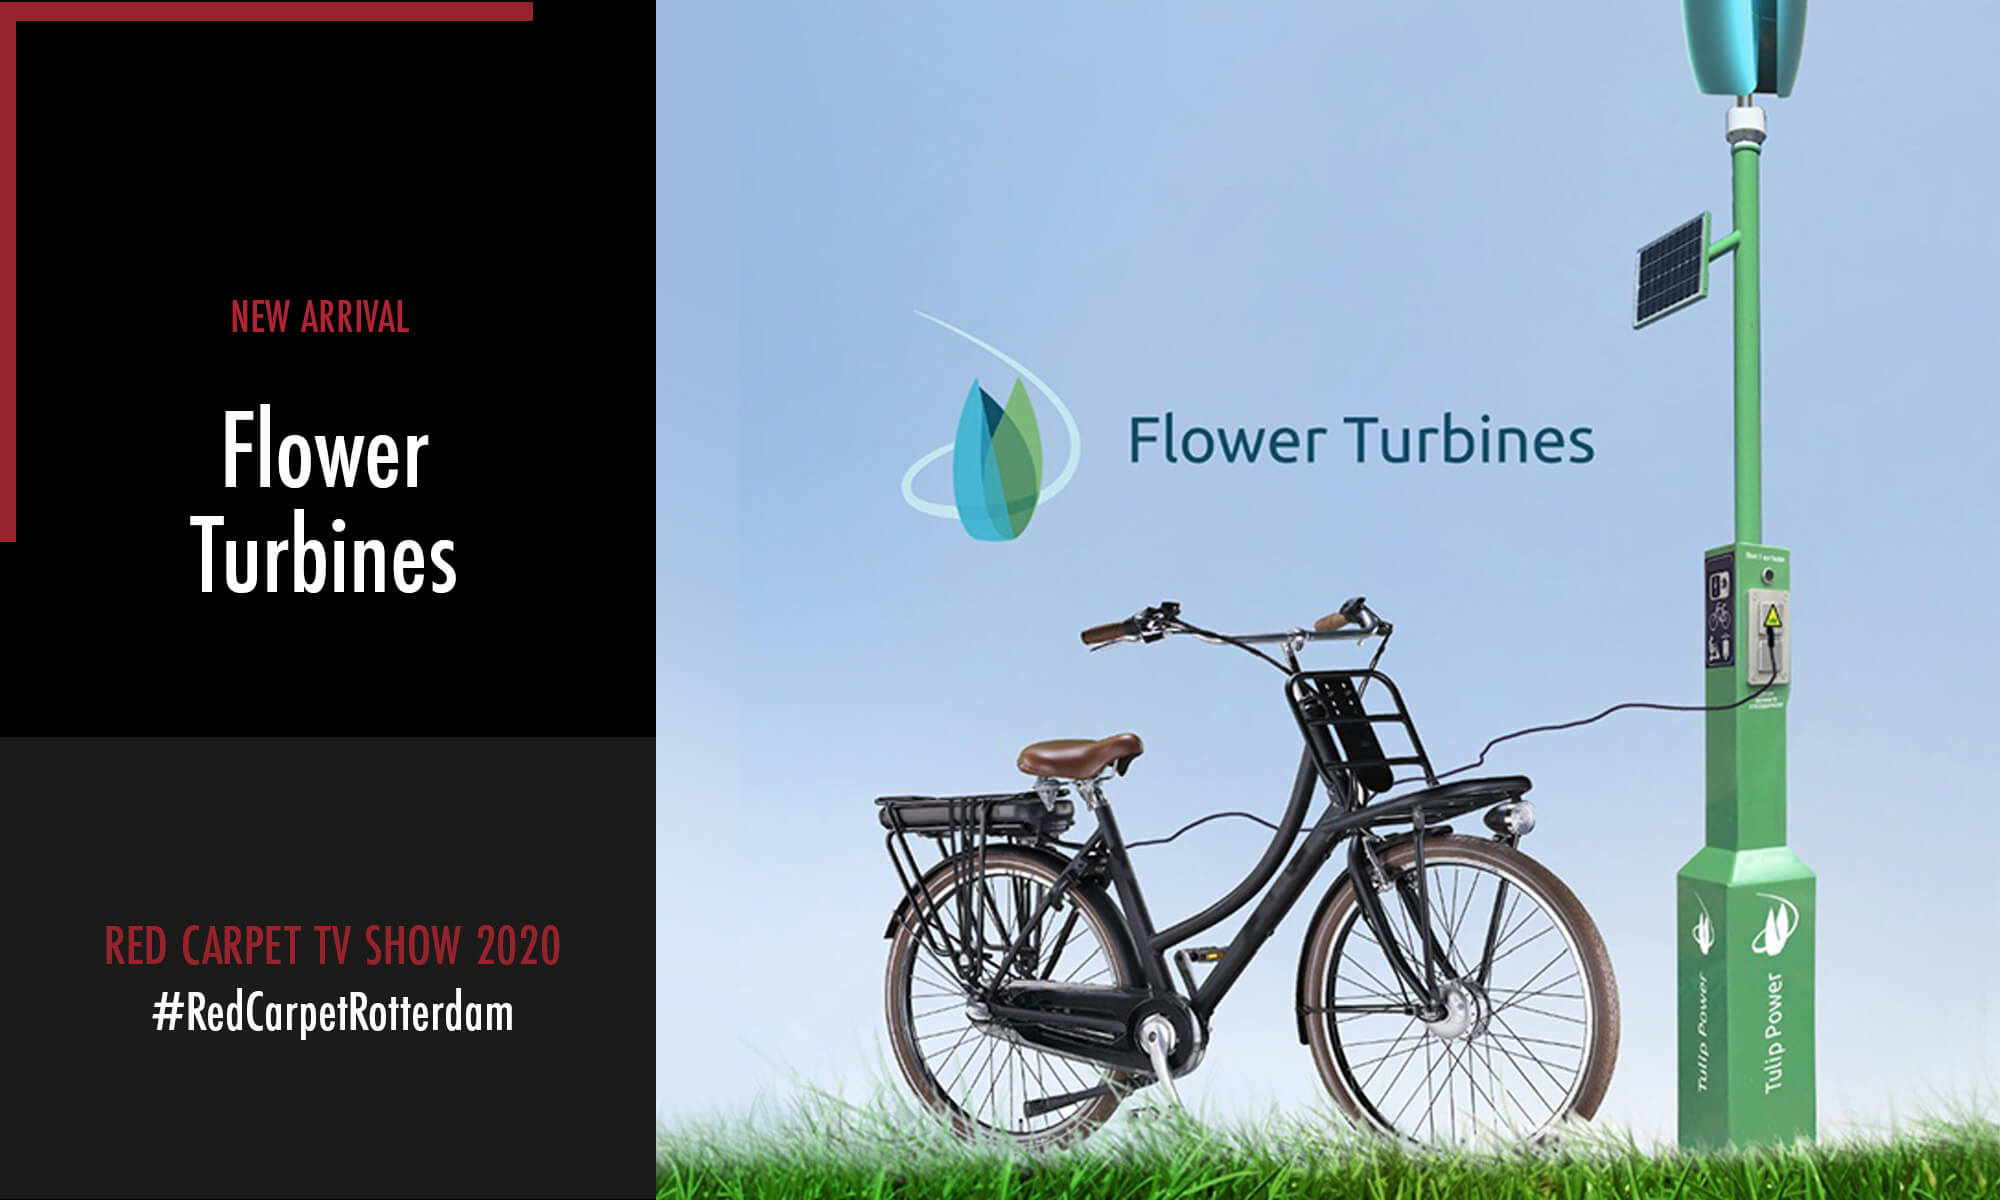 Flower Turbines is one of the new arrivals participating in the Red Carpet TV Show 2020